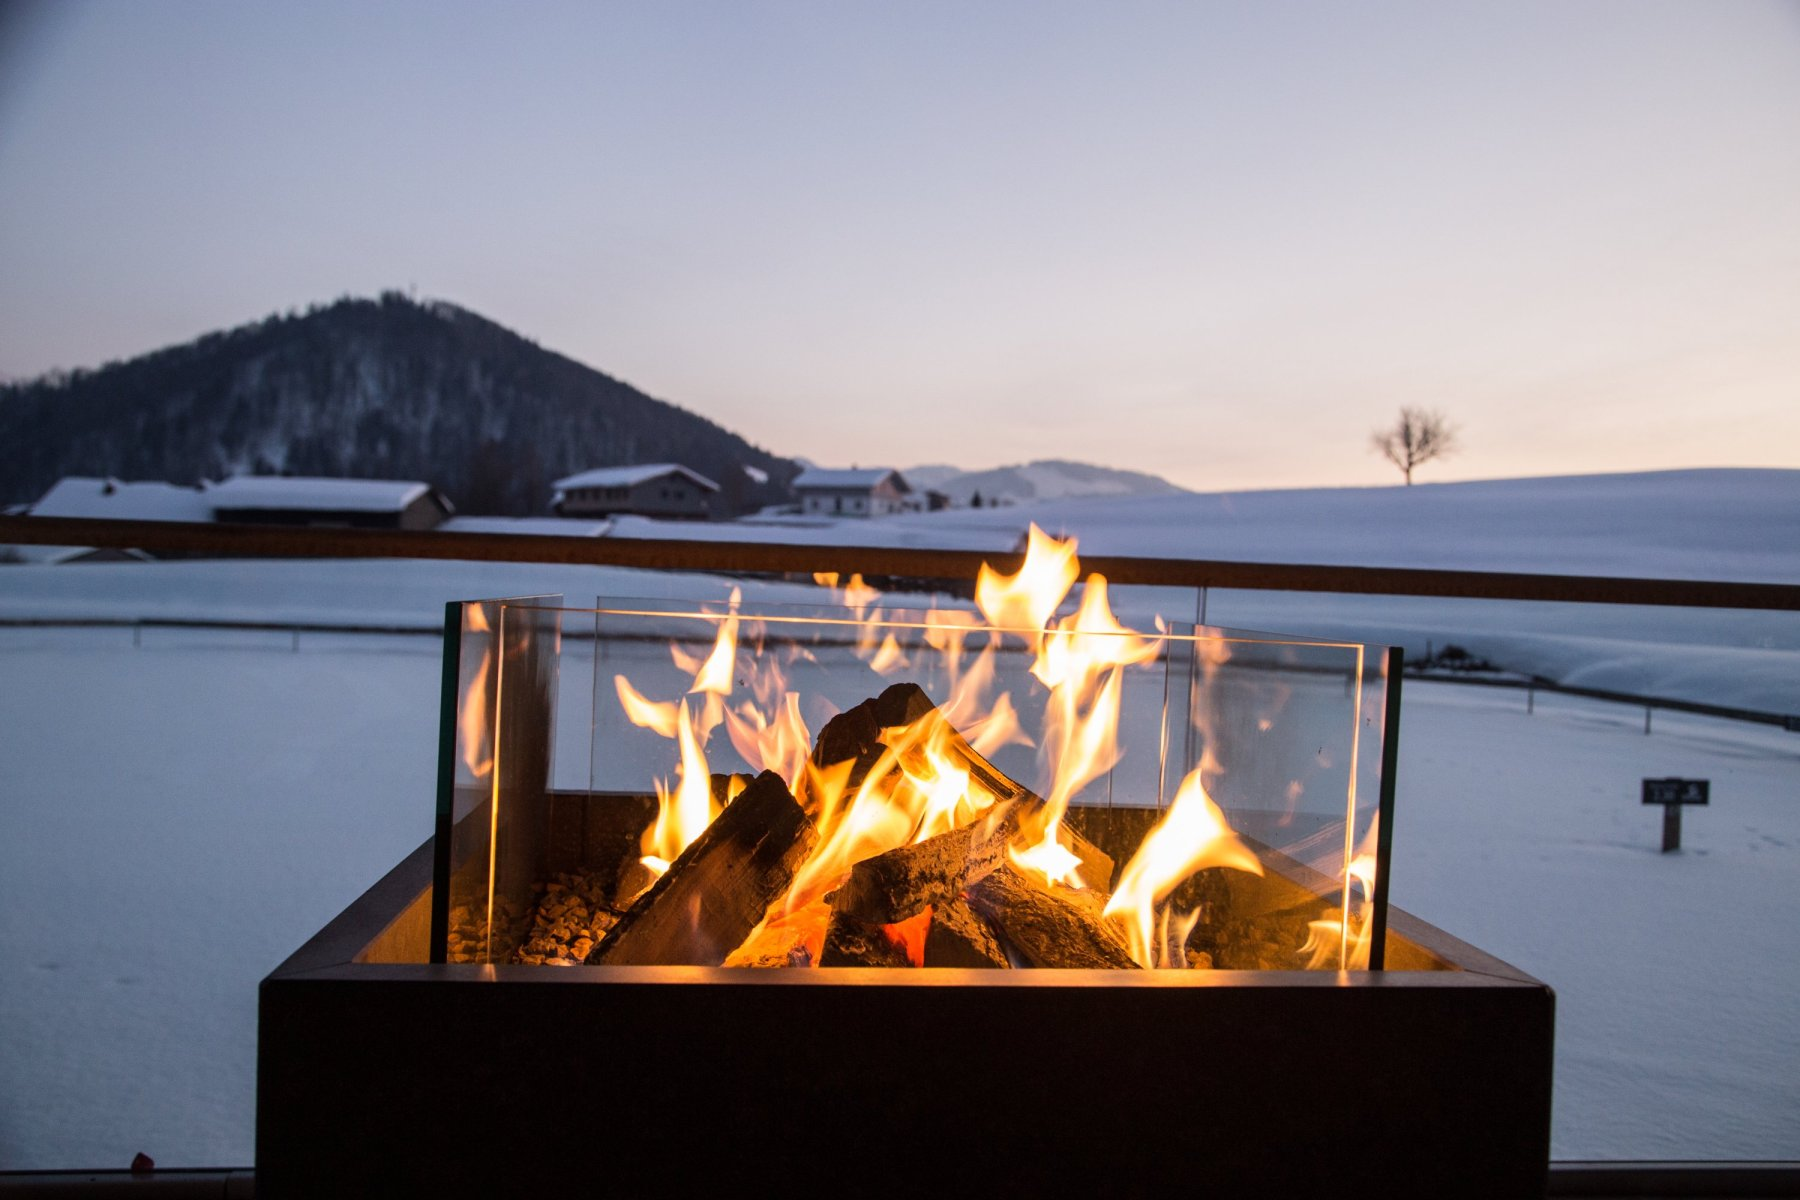 20190125-Feuer am See-52841 25. Januar 2019